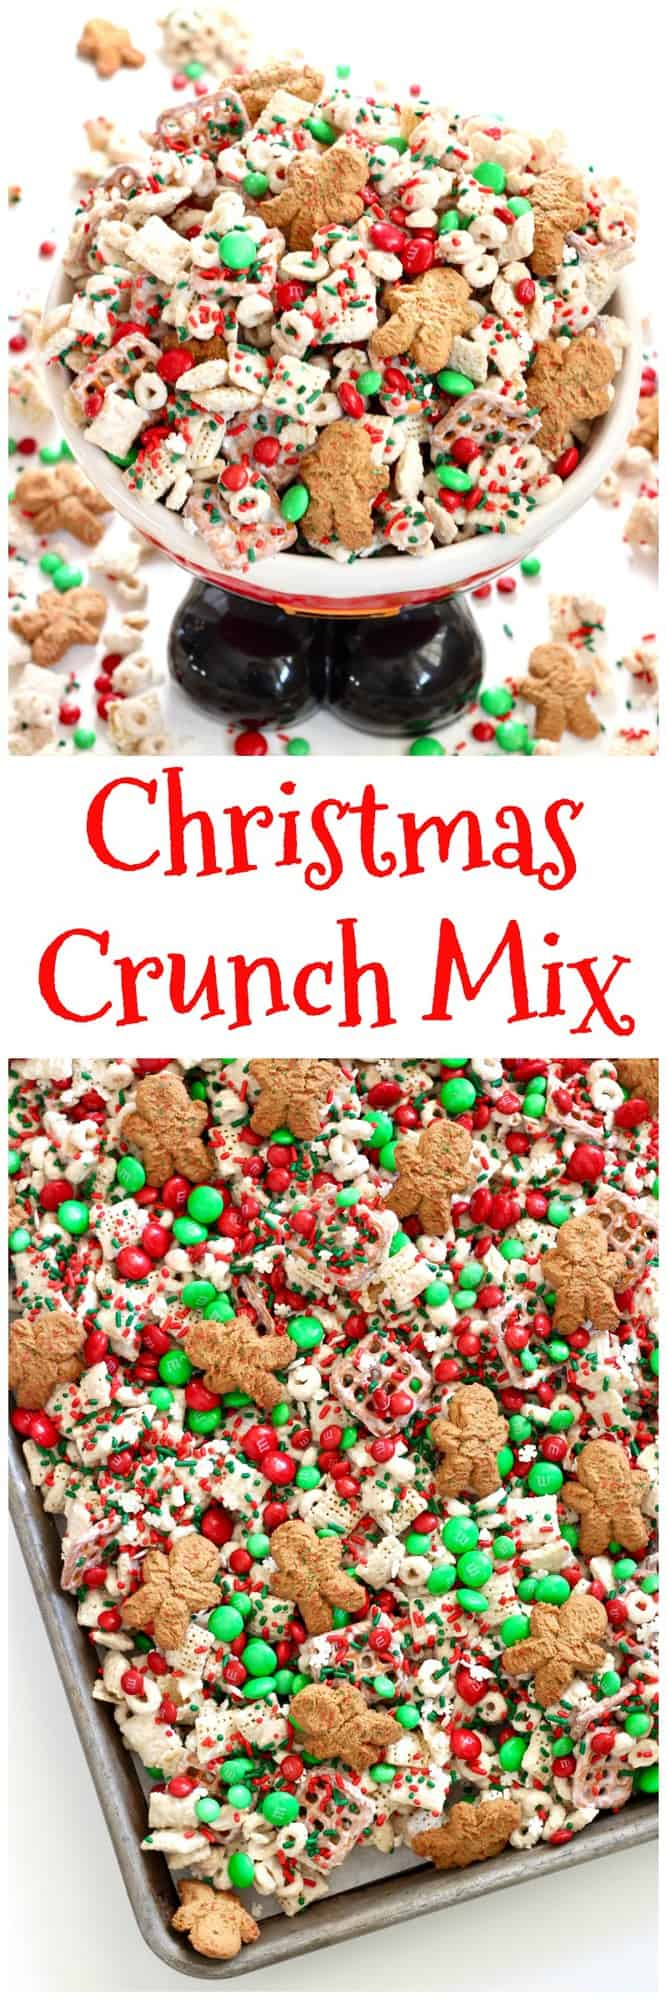 Christmas Crunch Mix